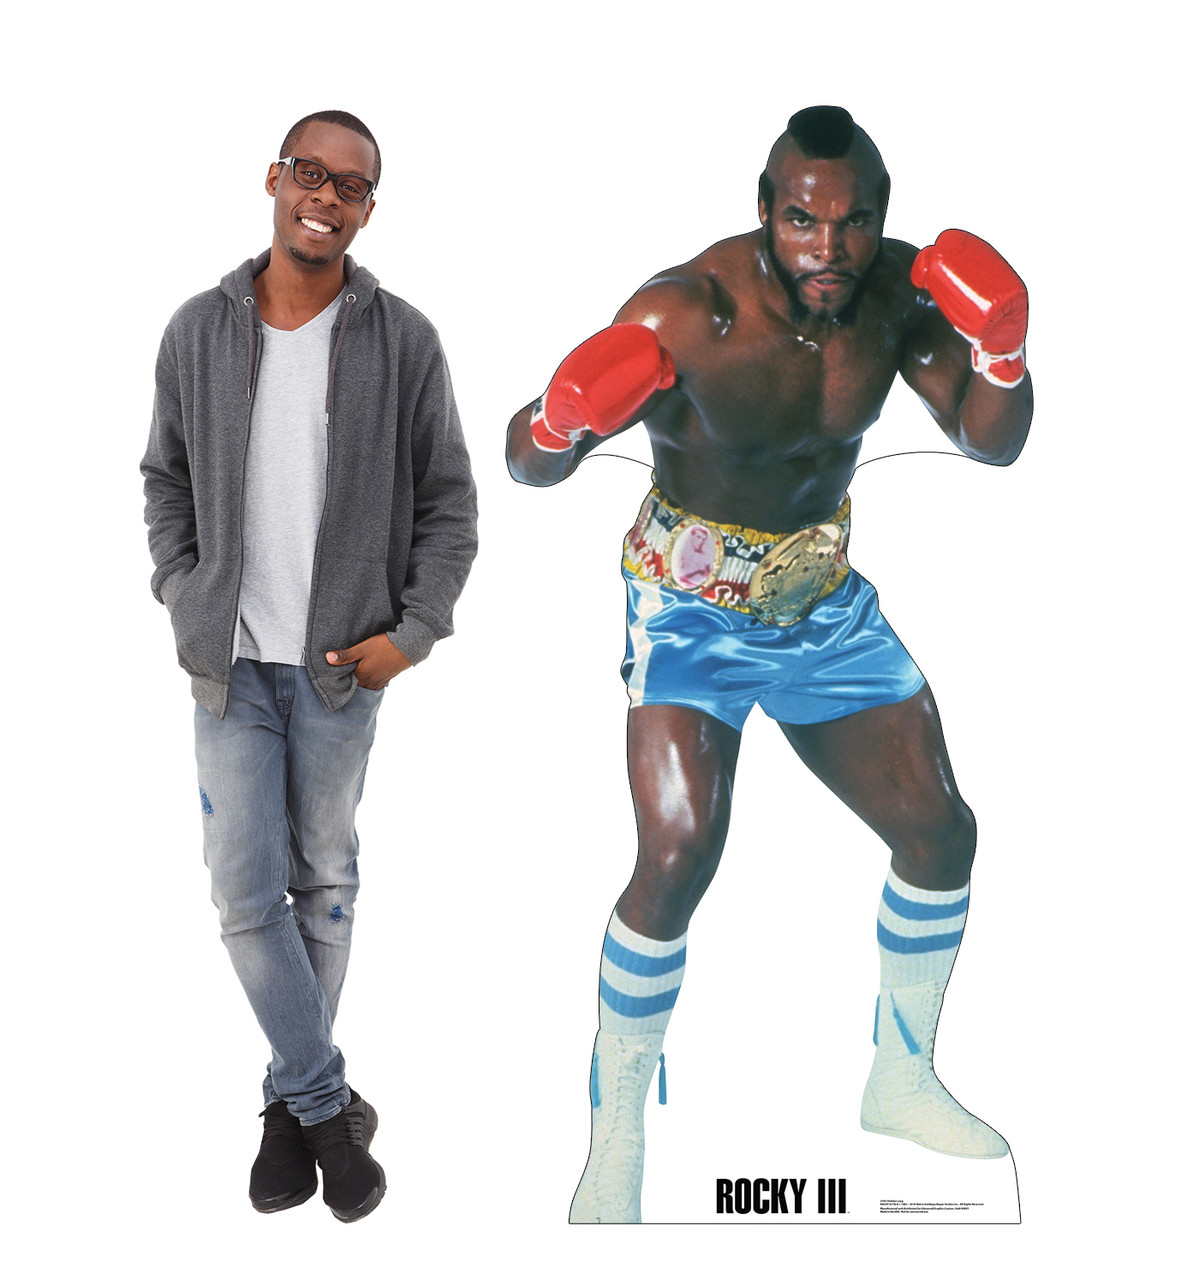 Life-size cardboard standee of Clubber Lang from Rocky III with model.